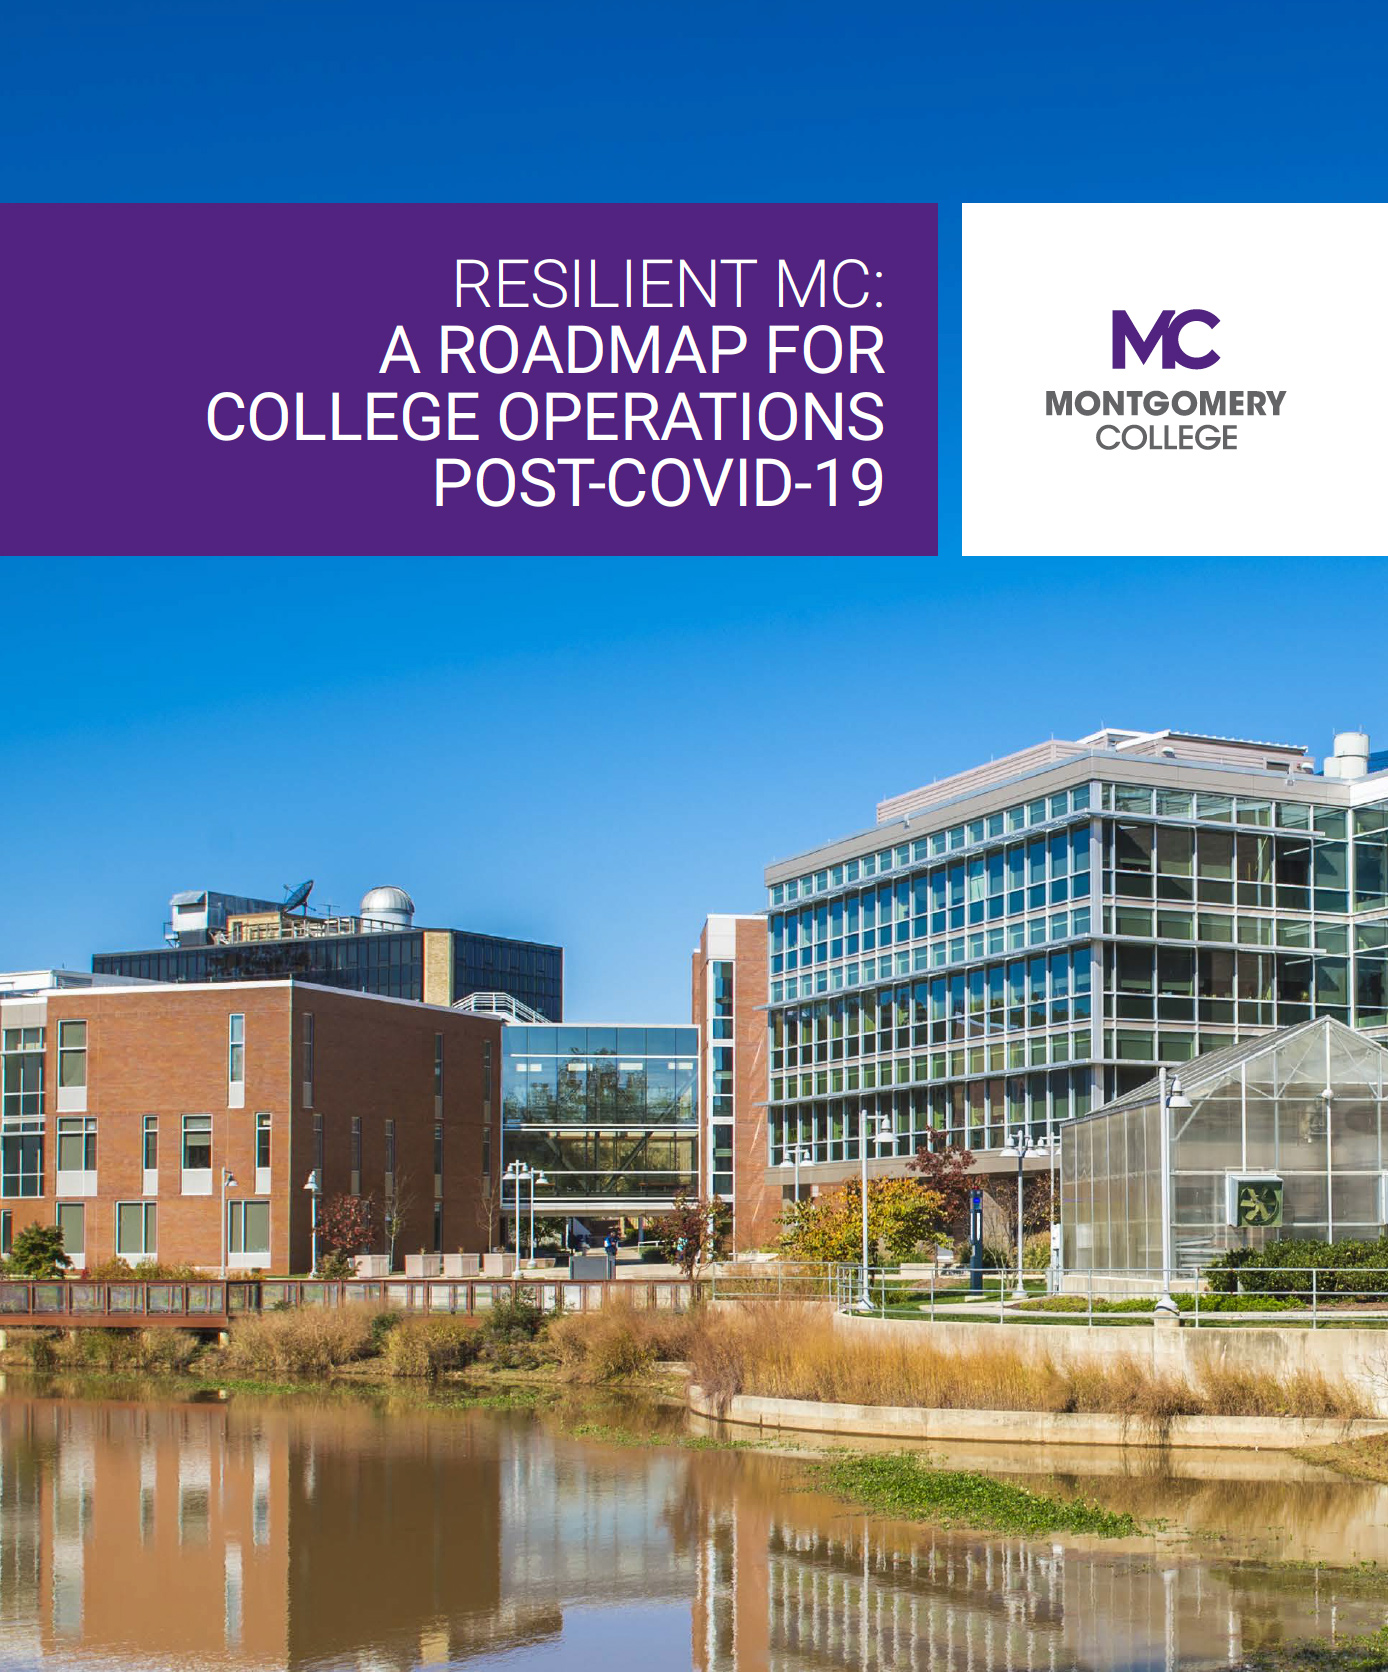 Resilient MC: A Roadmap for College Operations Post COVID-19